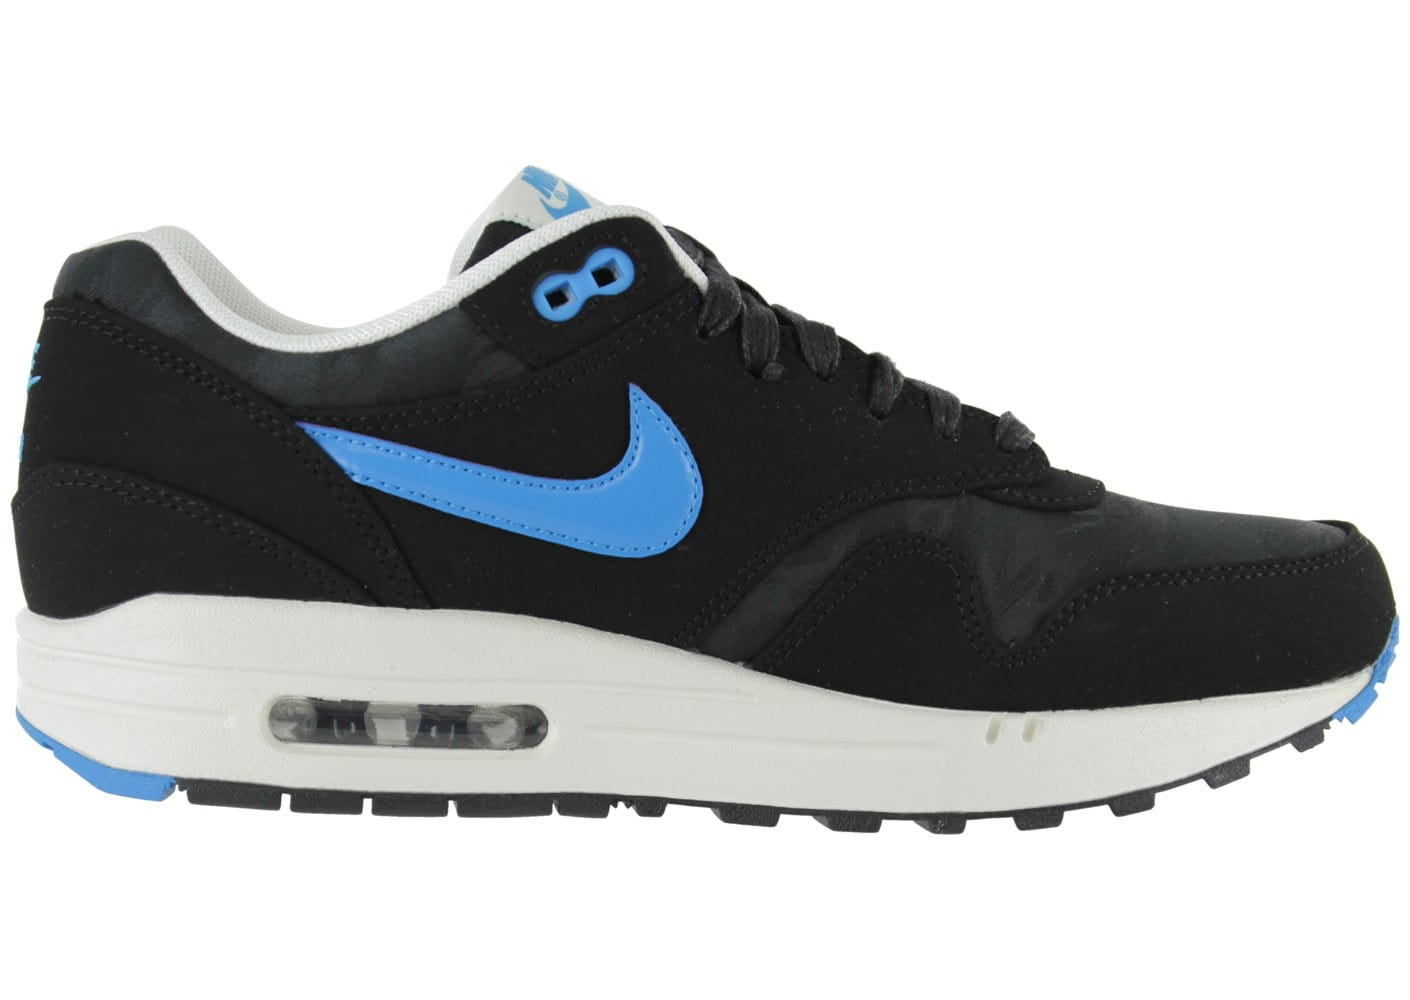 nike air max 1 premium noire chaussures homme chausport. Black Bedroom Furniture Sets. Home Design Ideas